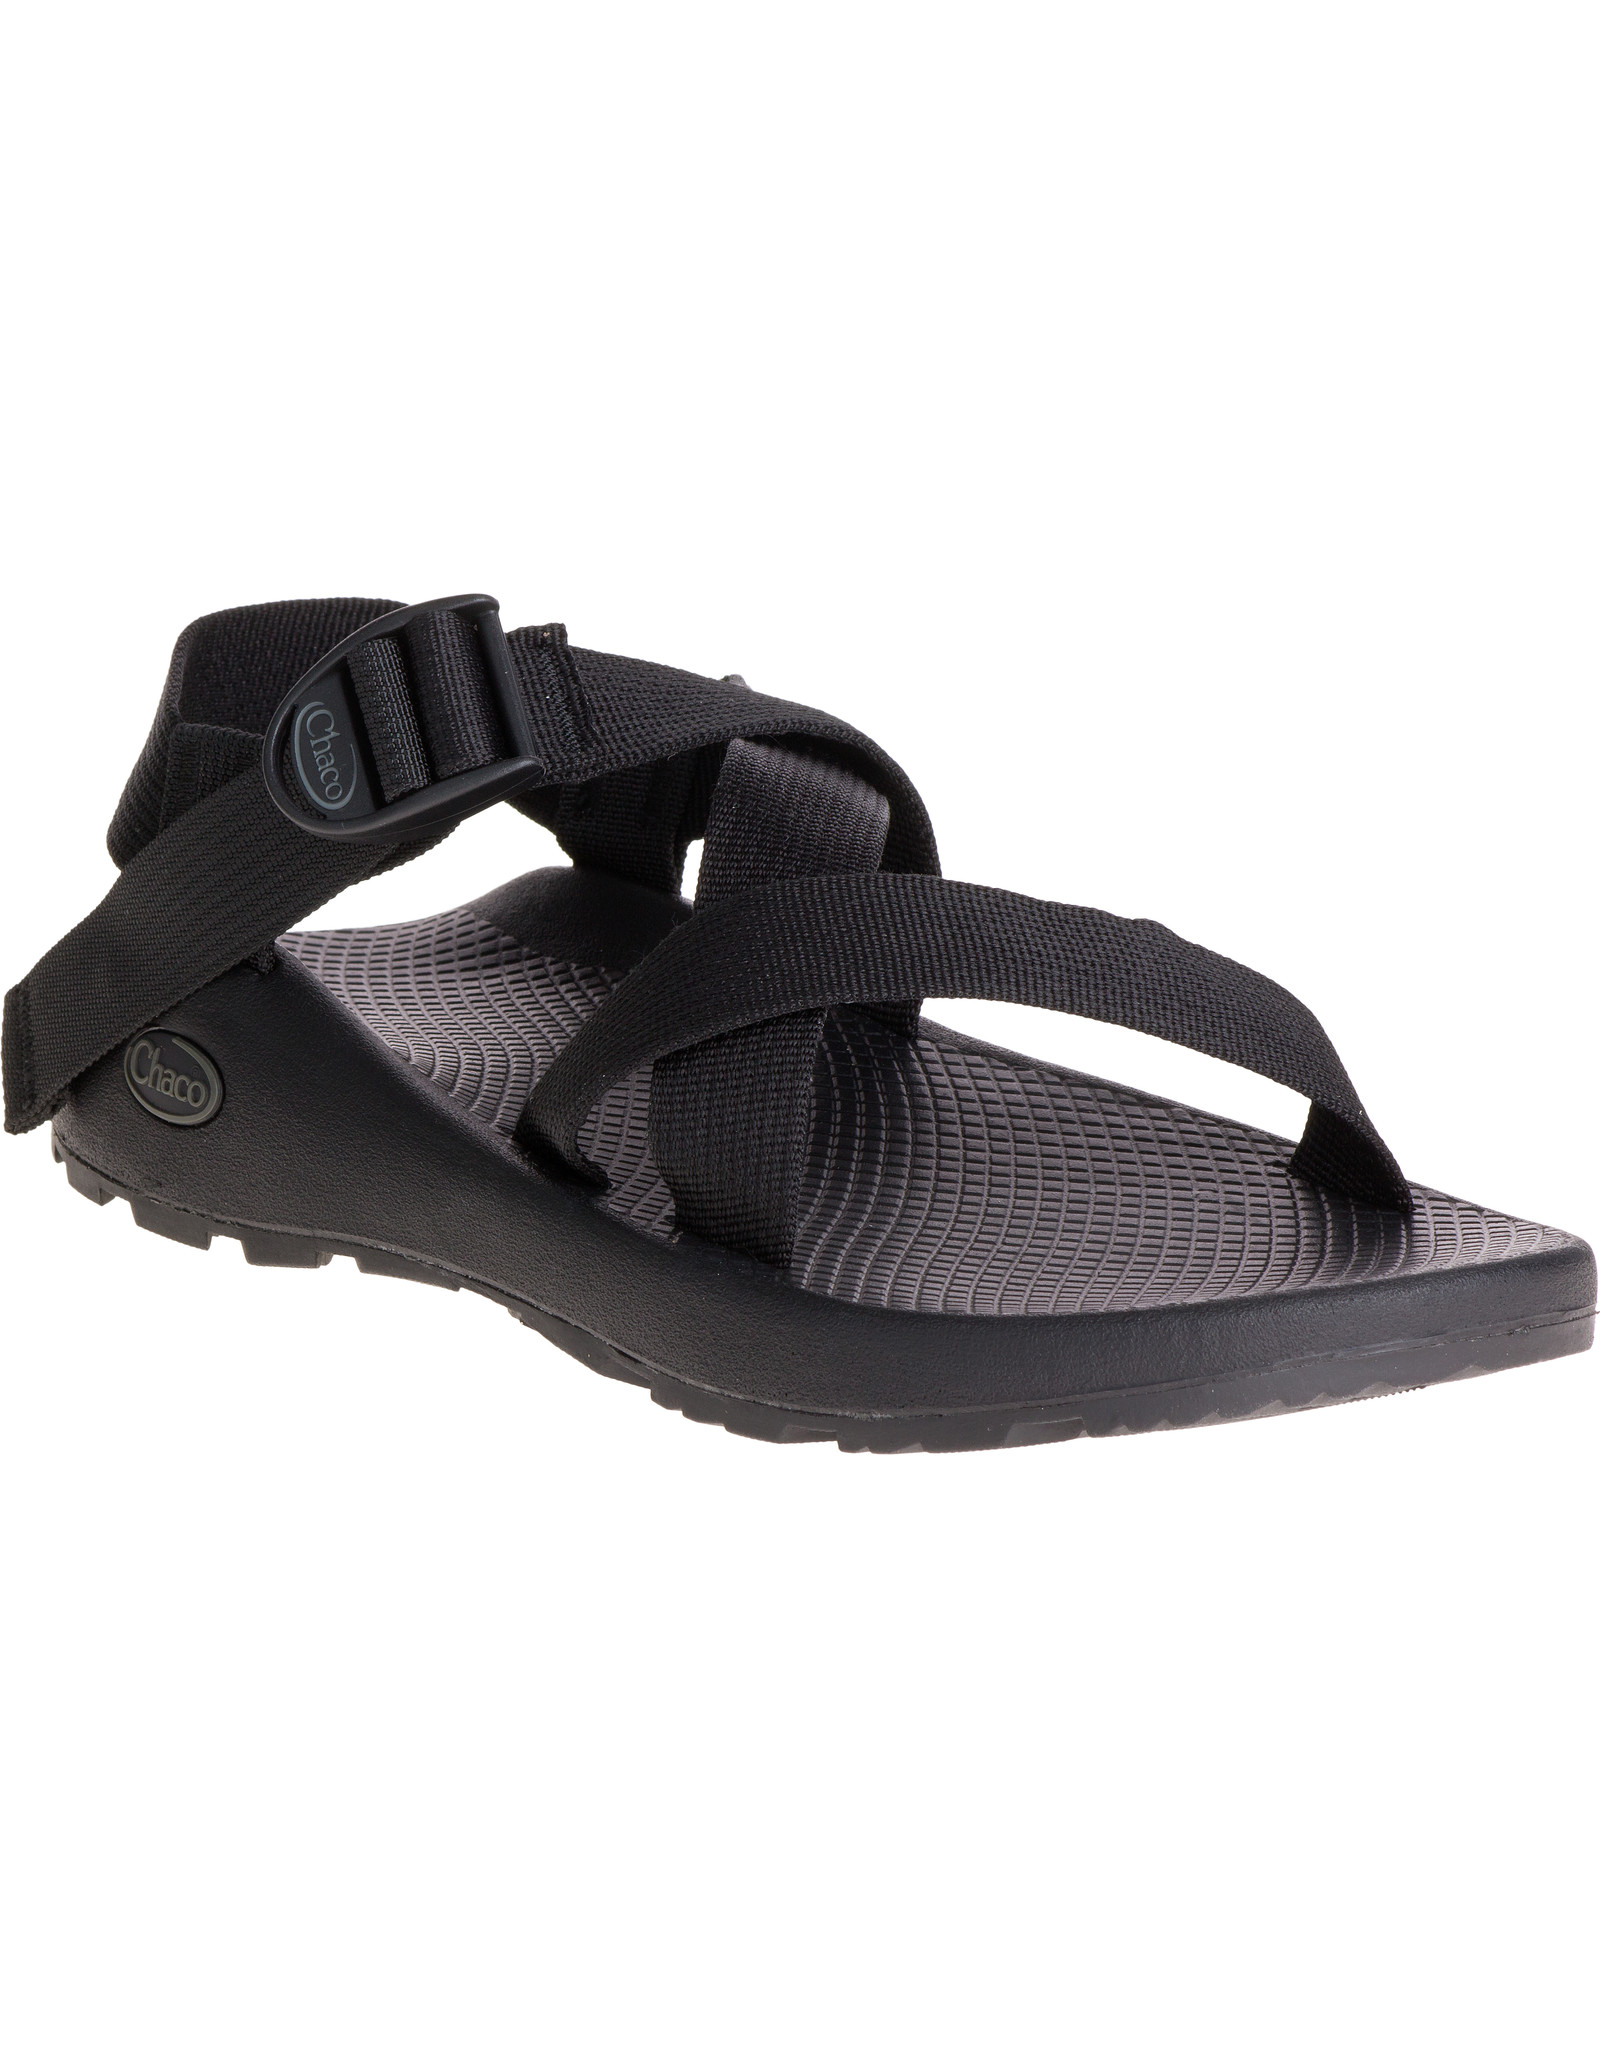 Chaco M Z1 Classic